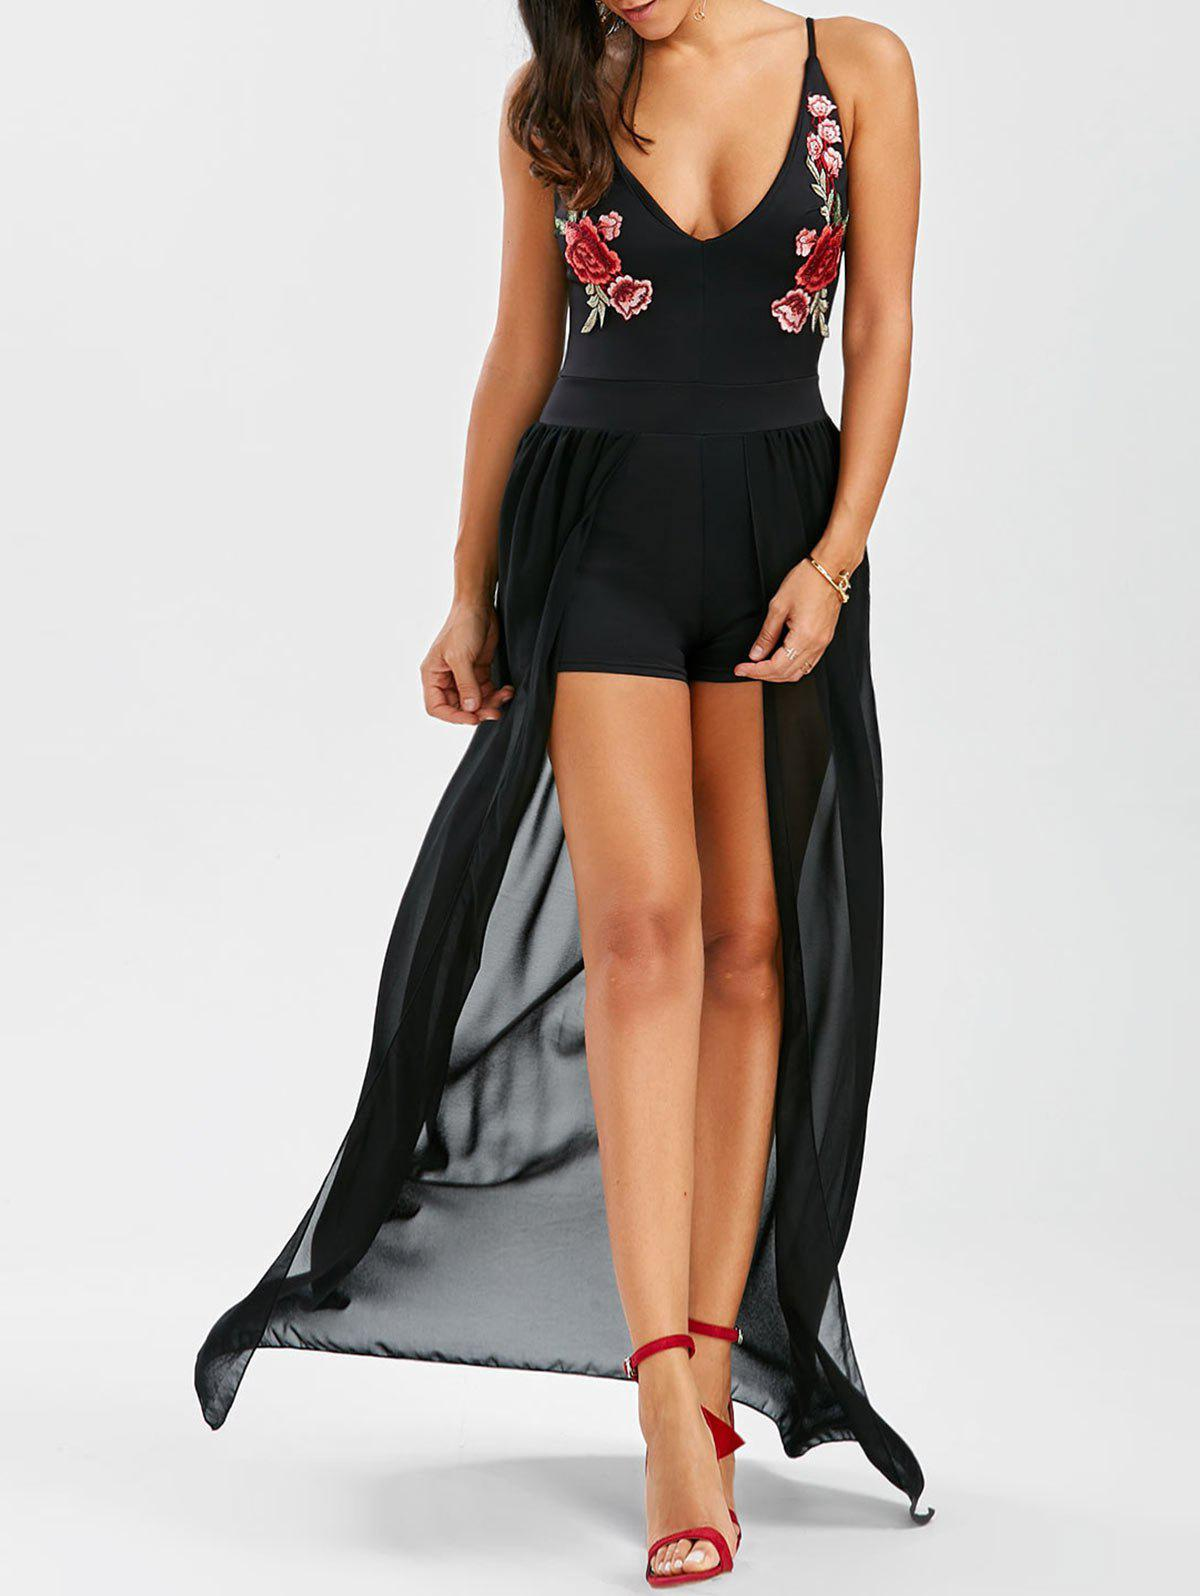 Hot See Thru Floral Embroidered Romper Dress